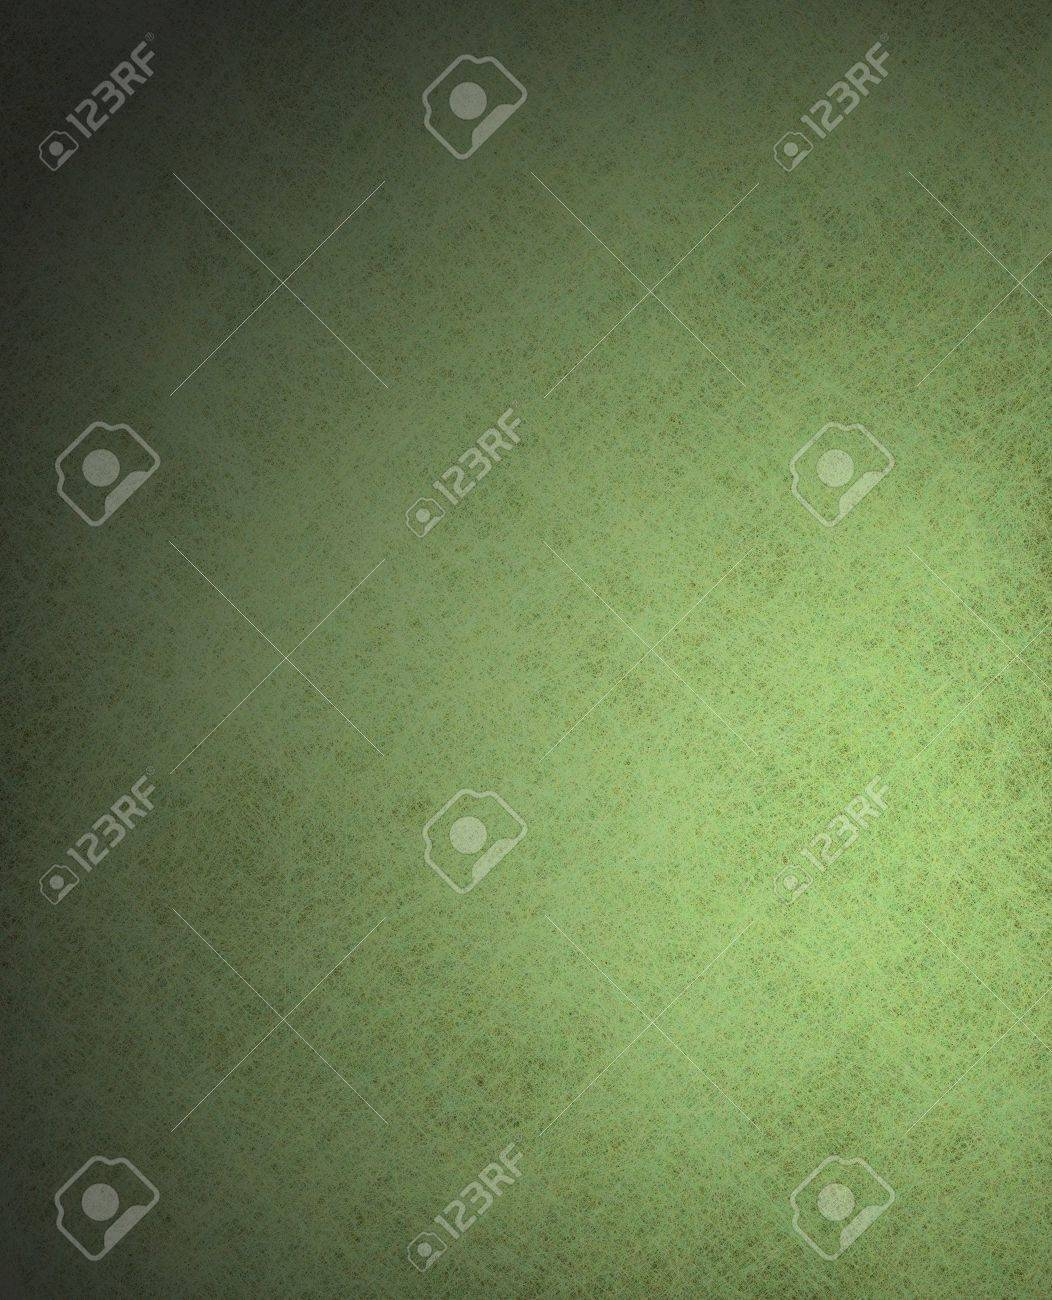 beautiful lighted green background with black vintage grunge texture and vignette border layout design with copyspace Stock Photo - 12624112